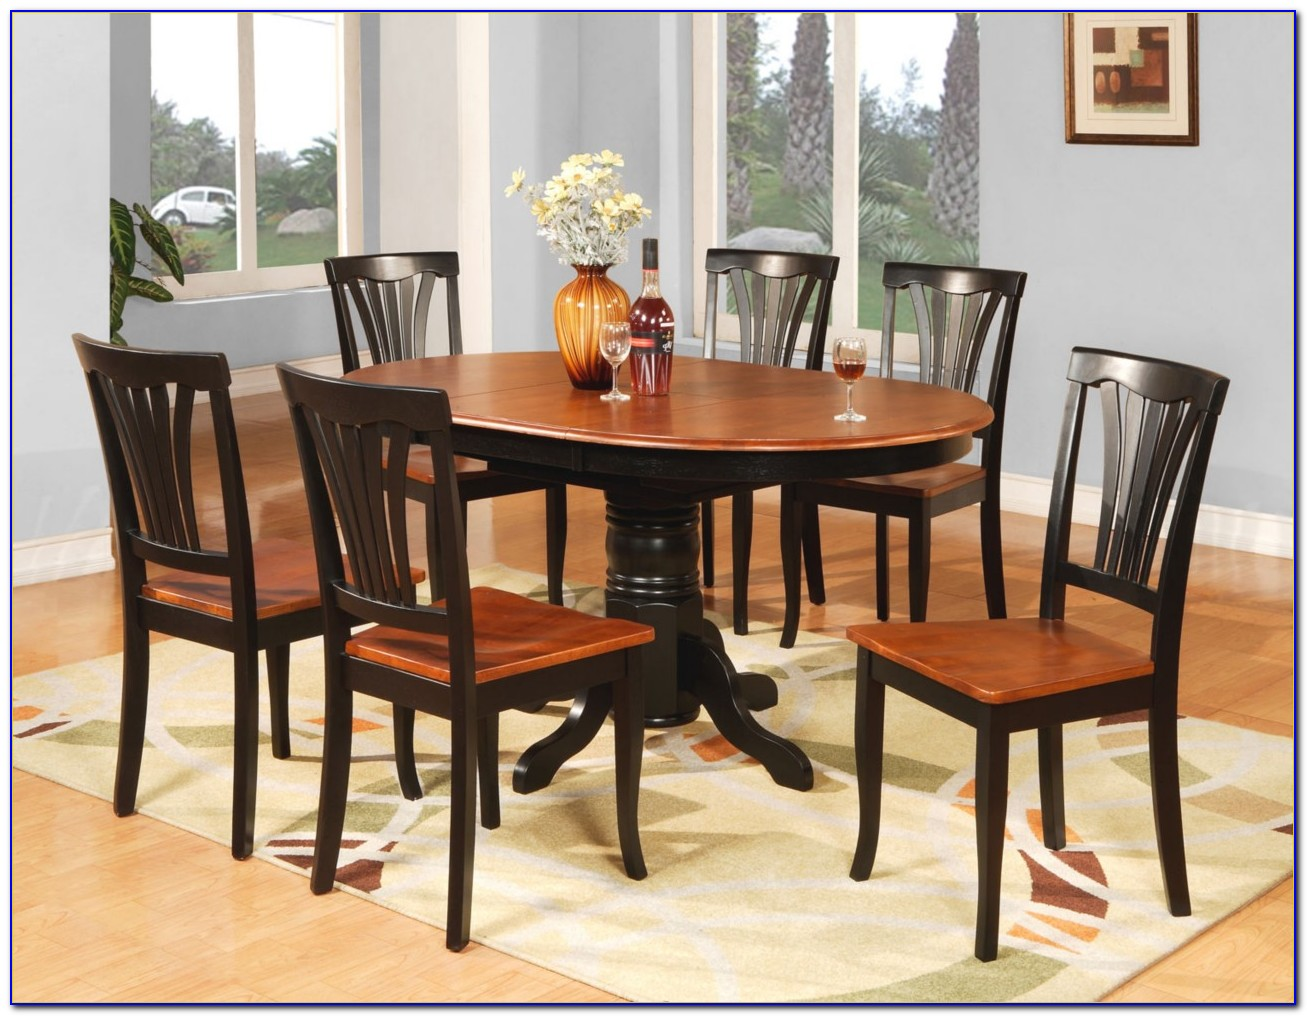 Dining Room Table And Chairs Ideas